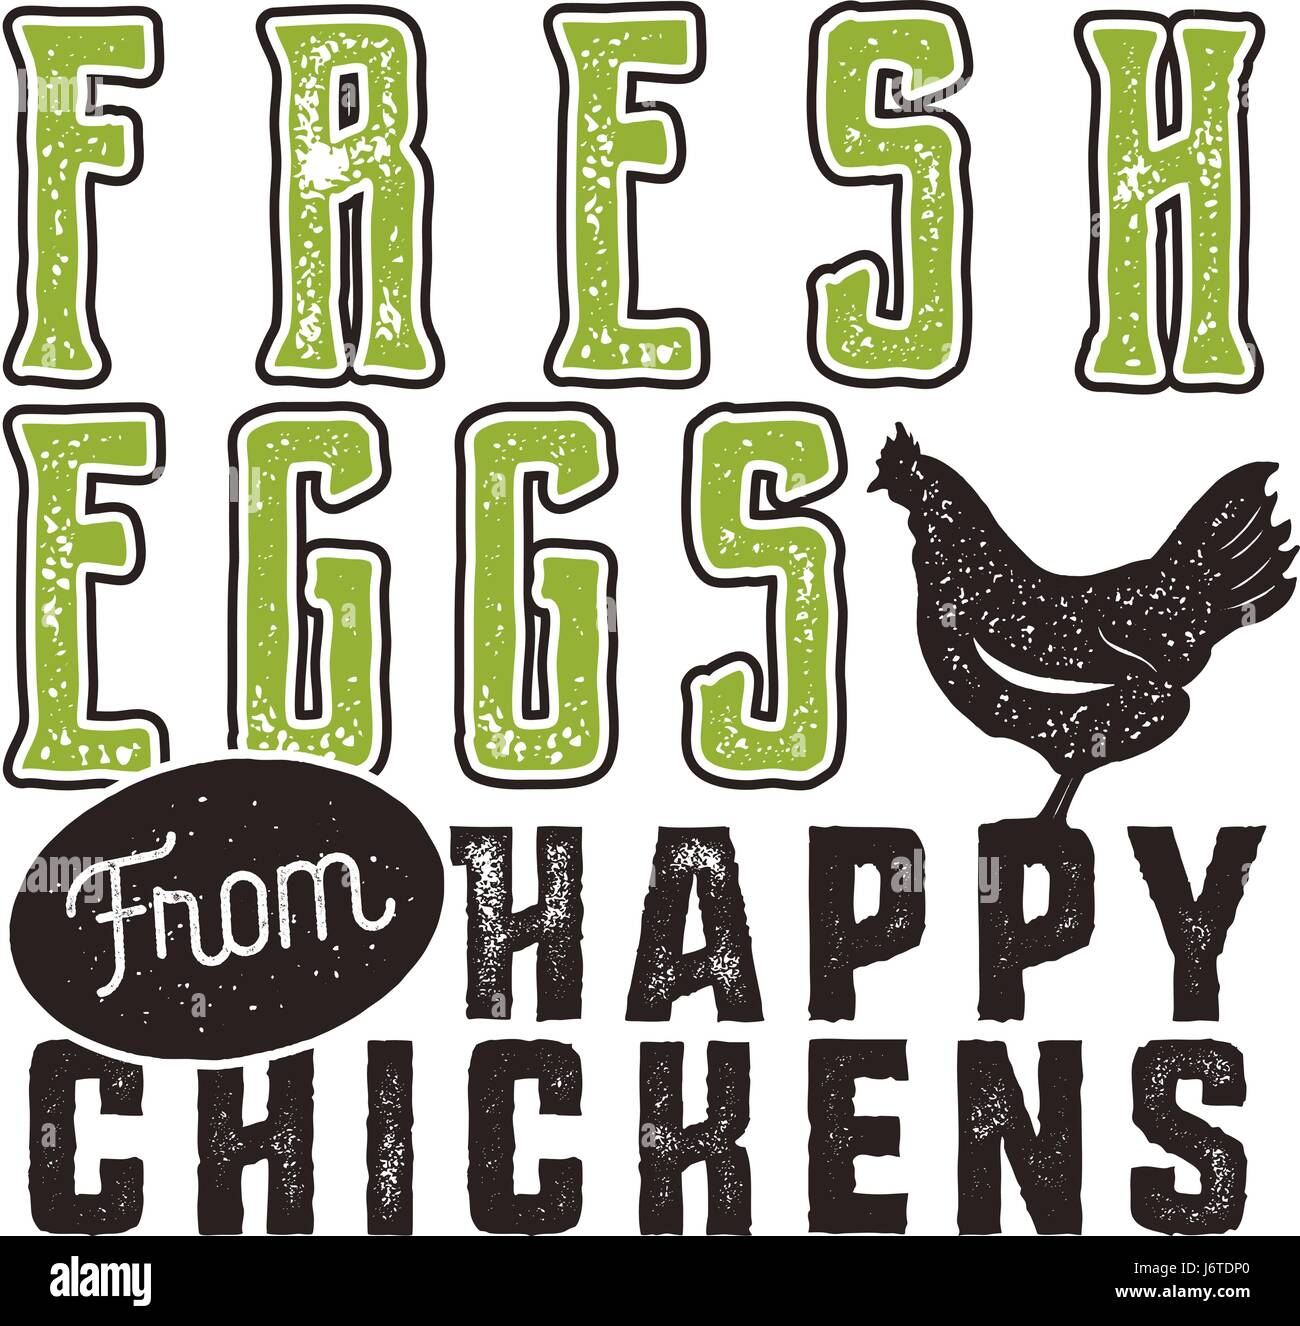 T shirt poster design - Fresh Eggs Poster Design Typography Green And Black Banner Template Good For Prints On T Shirts And Bags Stationery Wood Signs And Other Branding